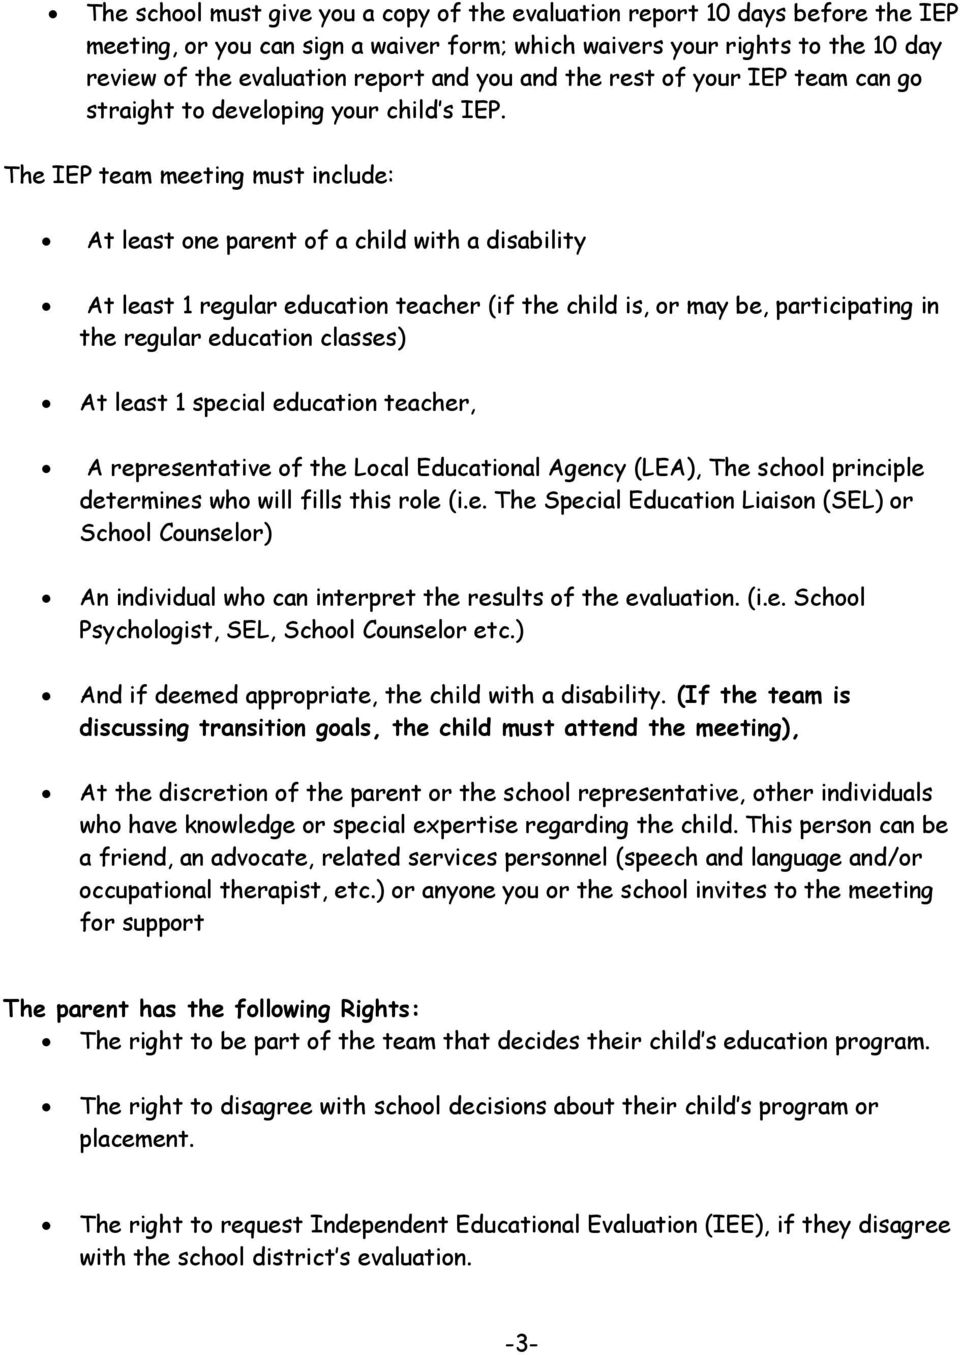 The IEP team meeting must include: At least one parent of a child with a disability At least 1 regular education teacher (if the child is, or may be, participating in the regular education classes)